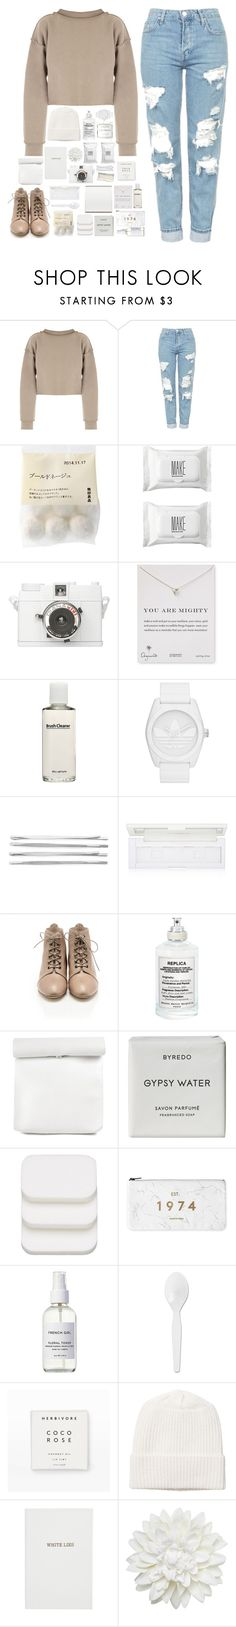 """""""if you hadn't found me"""" by kate-kat-kit ❤ liked on Polyvore featuring My Mum Made It, Topshop, Make, Lomography, Dogeared, shu uemura, adidas Originals, Cara, Loeffler Randall and Maison Margiela"""